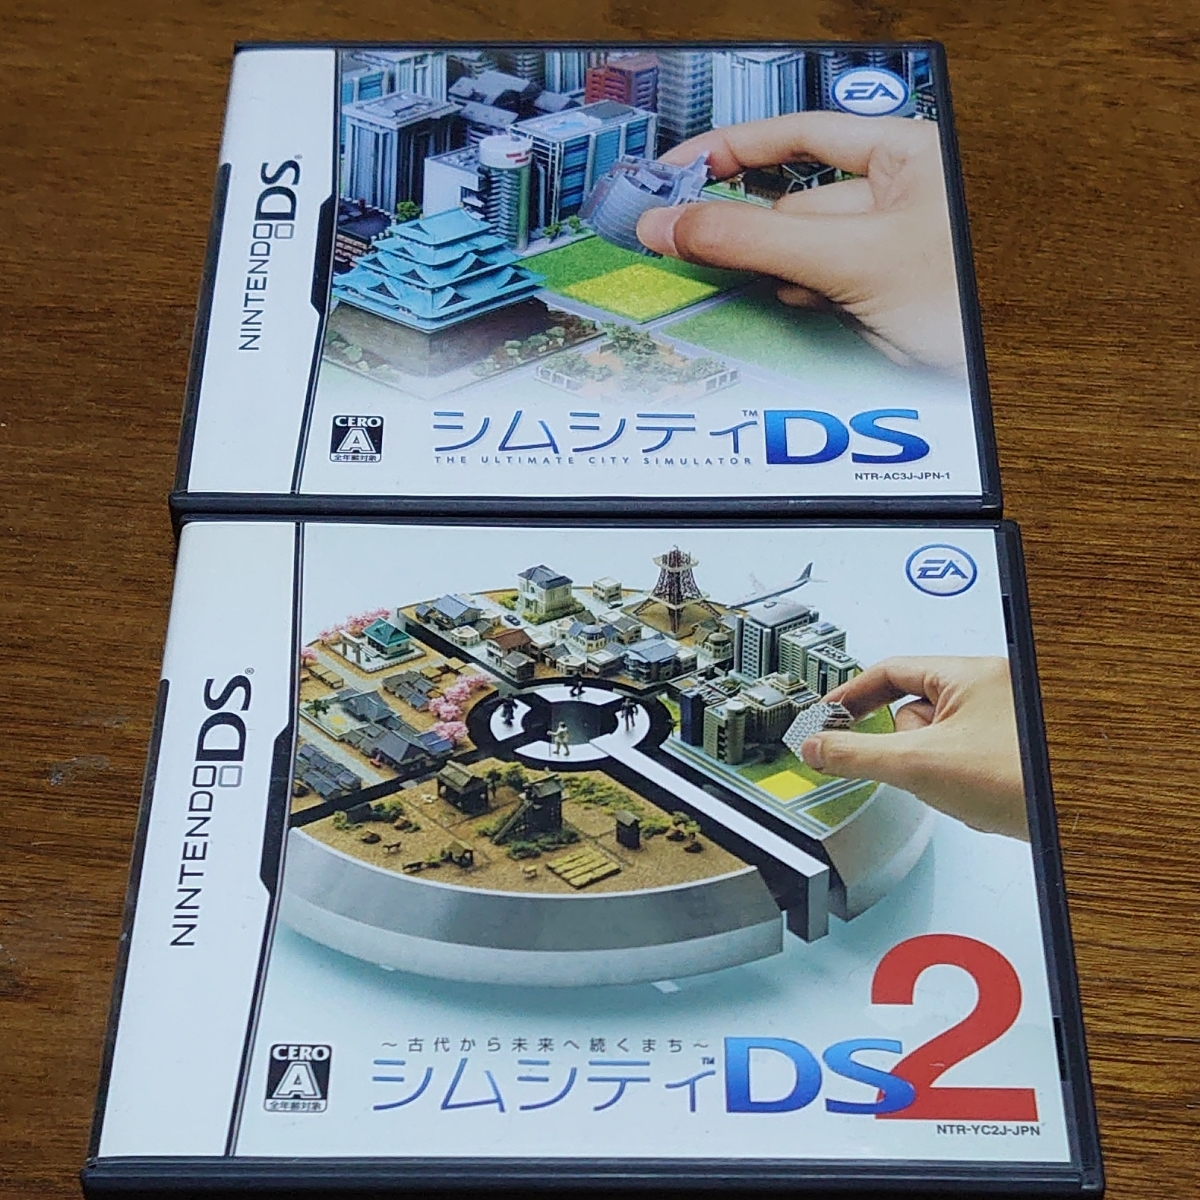 DSソフト シムシティDS+DS2セット